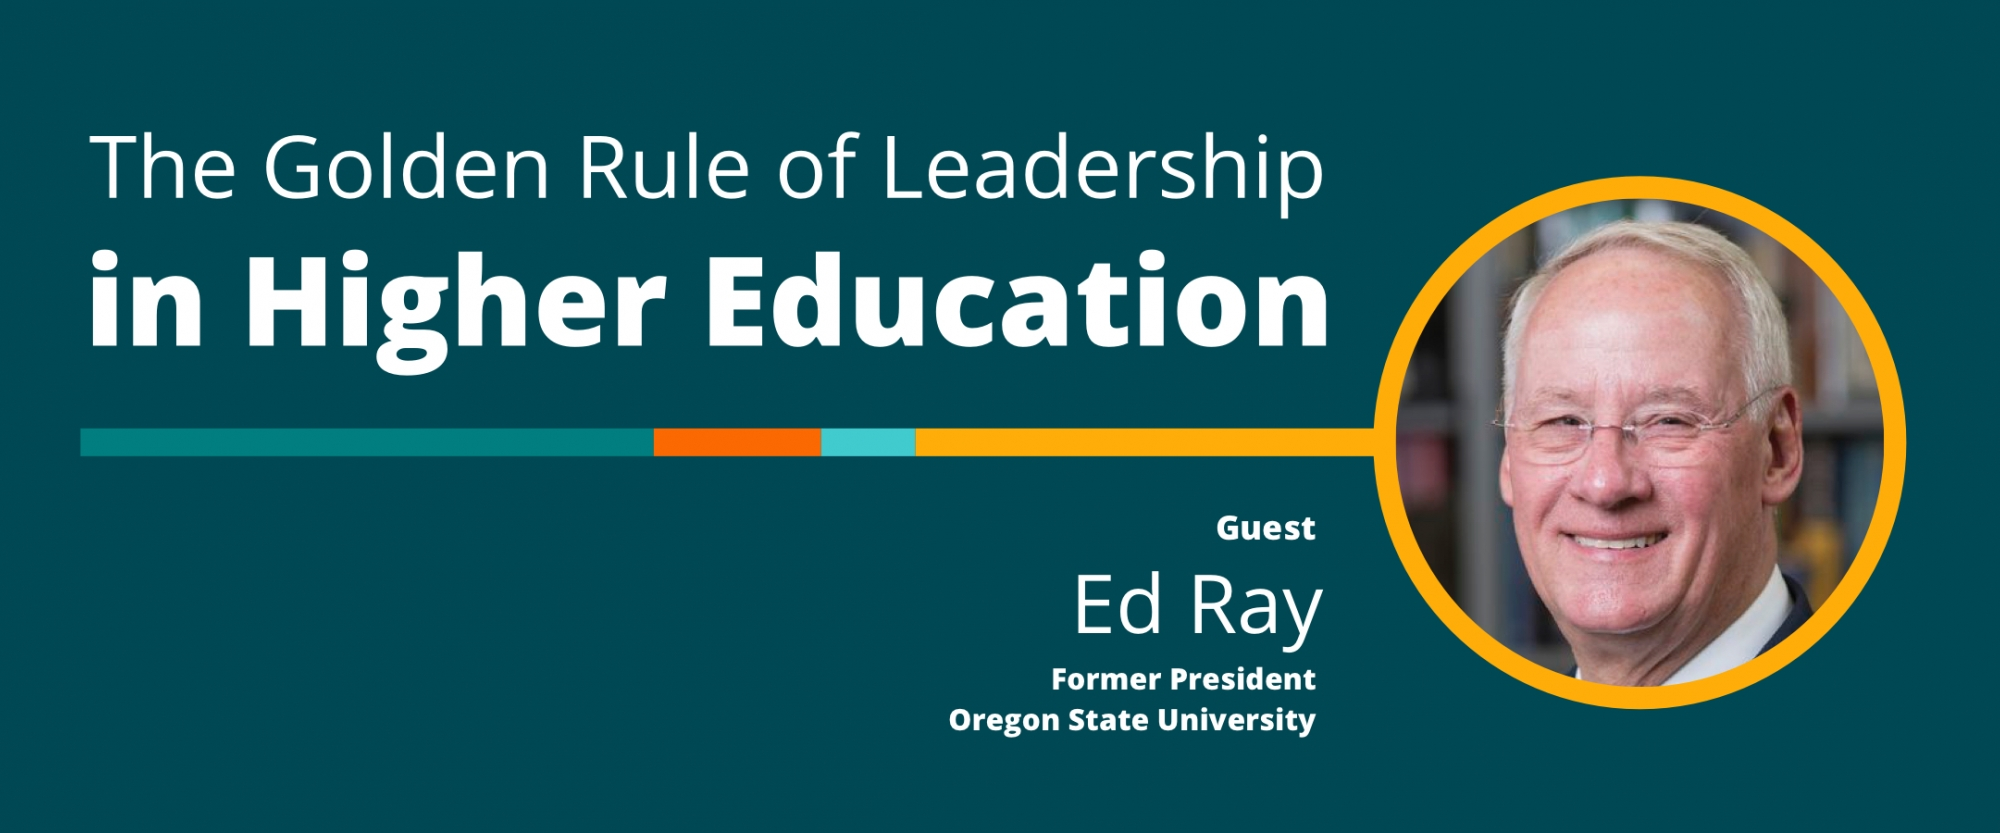 The Golden Rule of Leadership in Higher Education: A Conversation With Ed Ray, Former President, Oregon State University